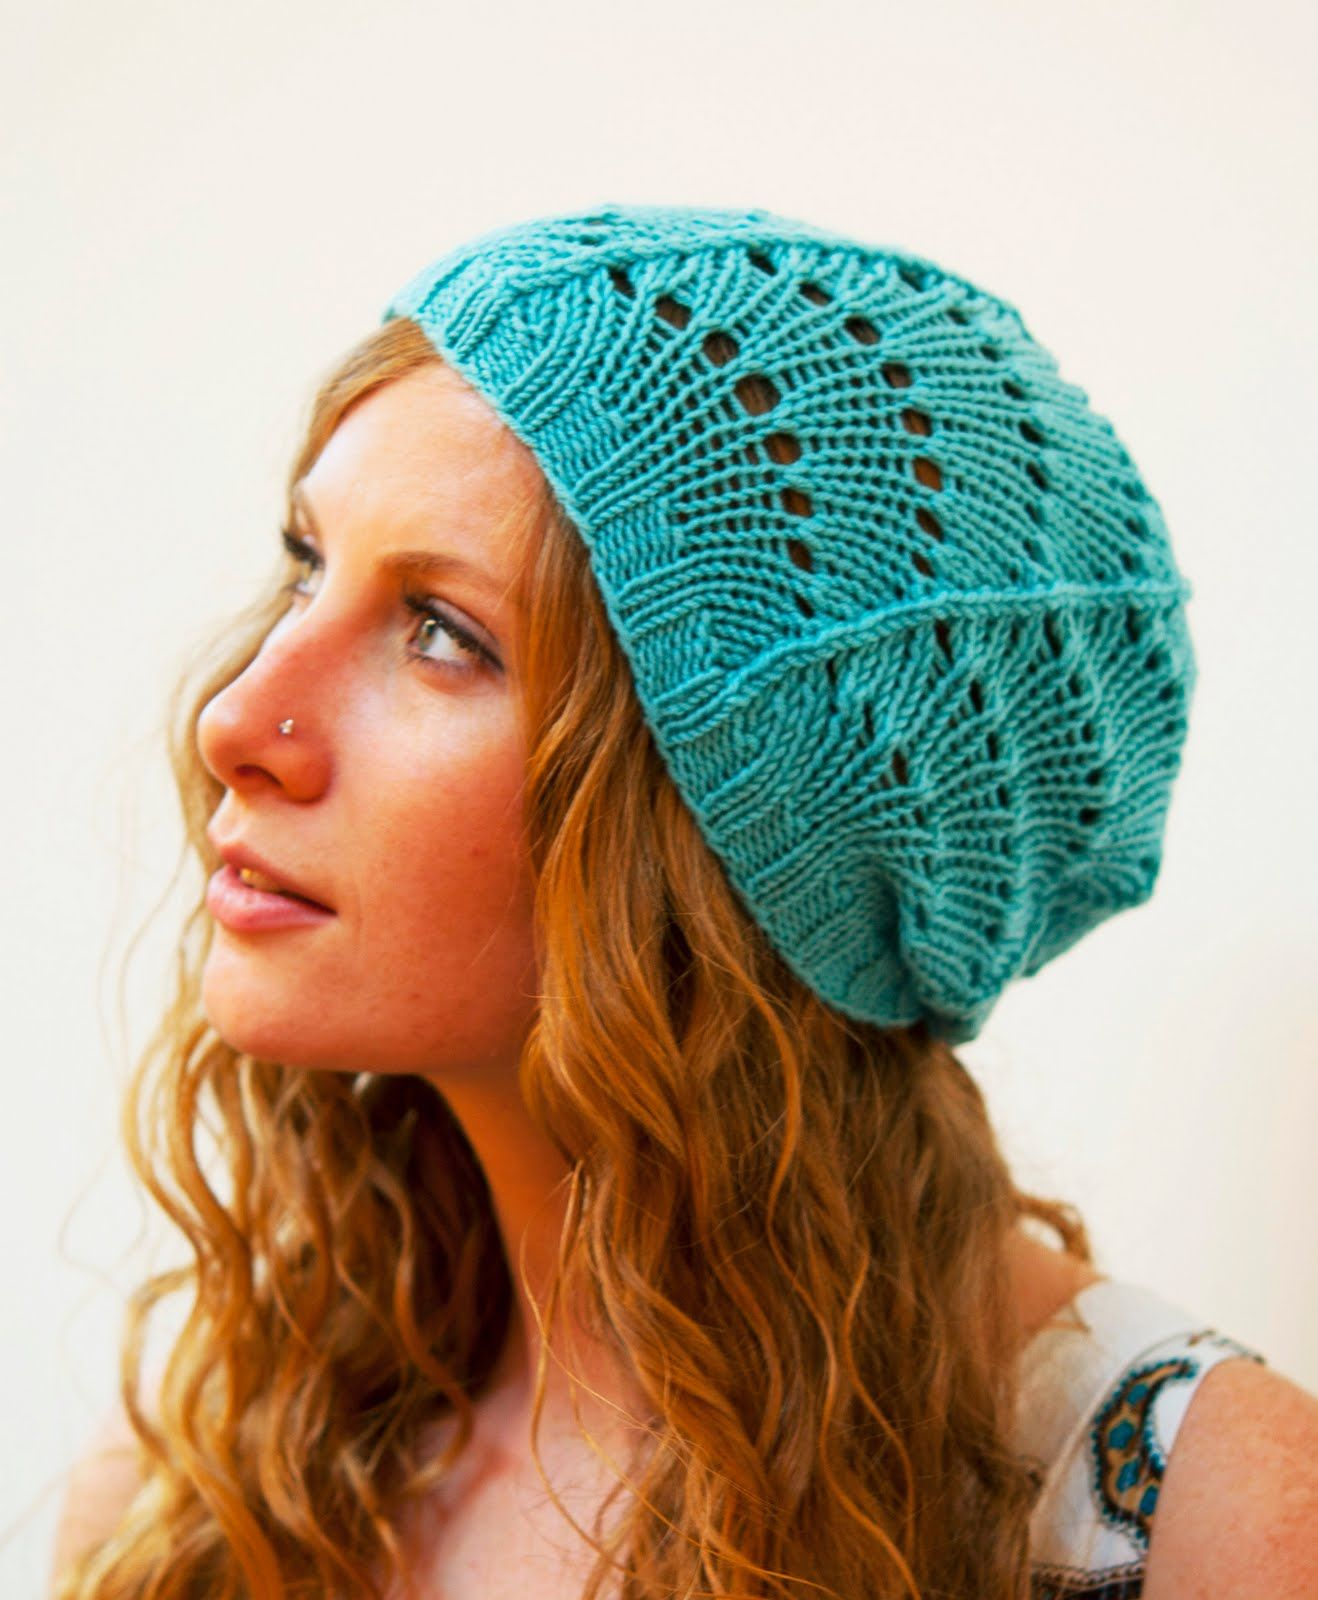 Charming little hat thats quick to make and easy ruby ravelry scallop lace hat pattern by leah coccari swift knit hat pattern bankloansurffo Images